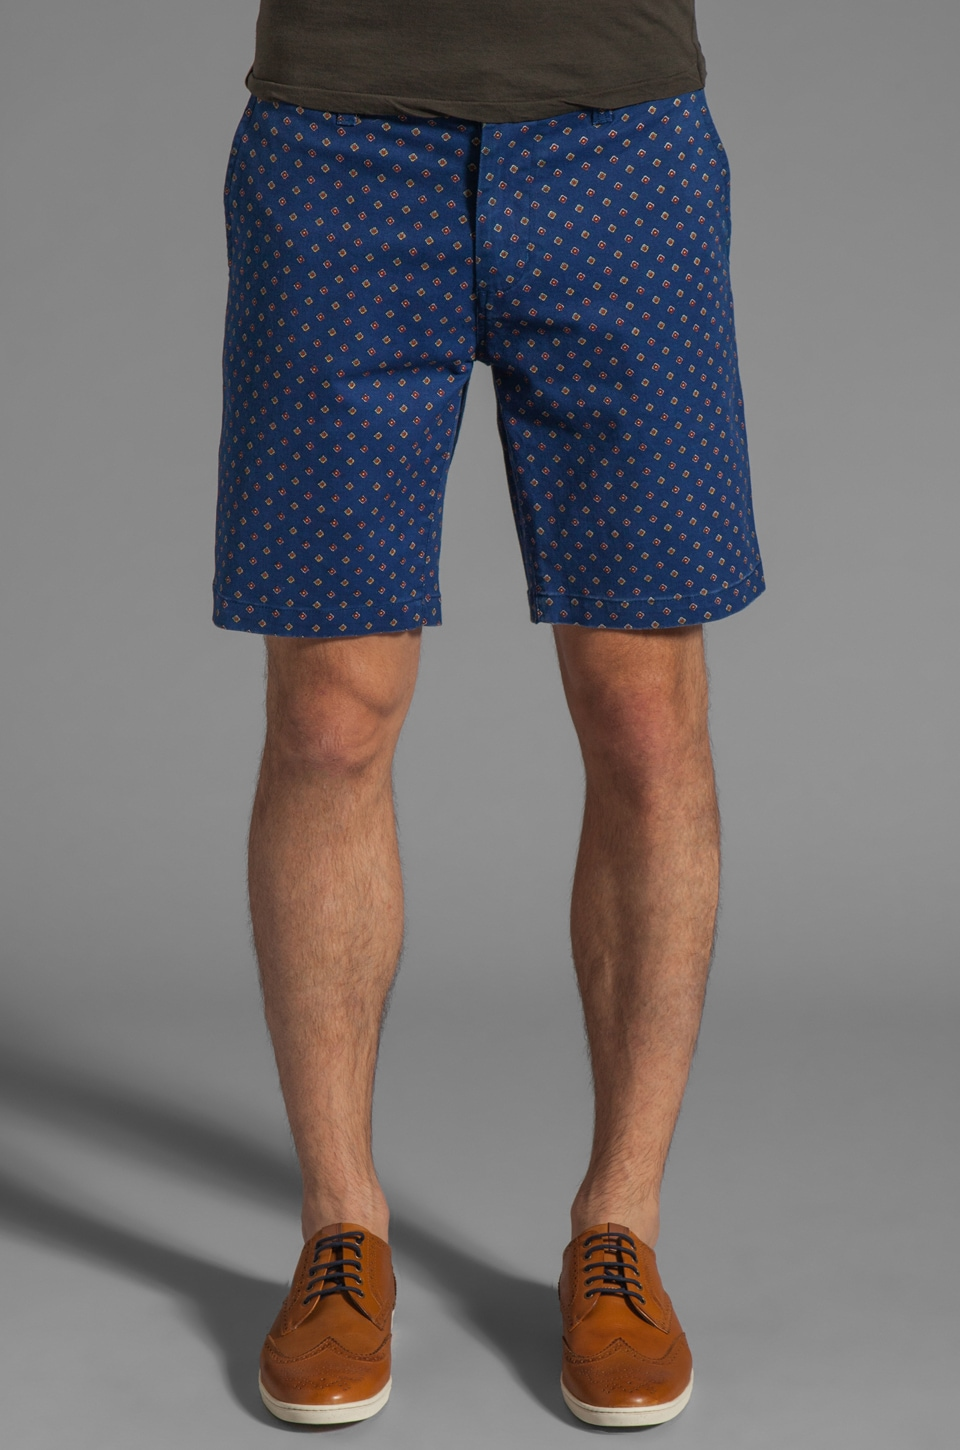 Obey Tarmac Short in Navy